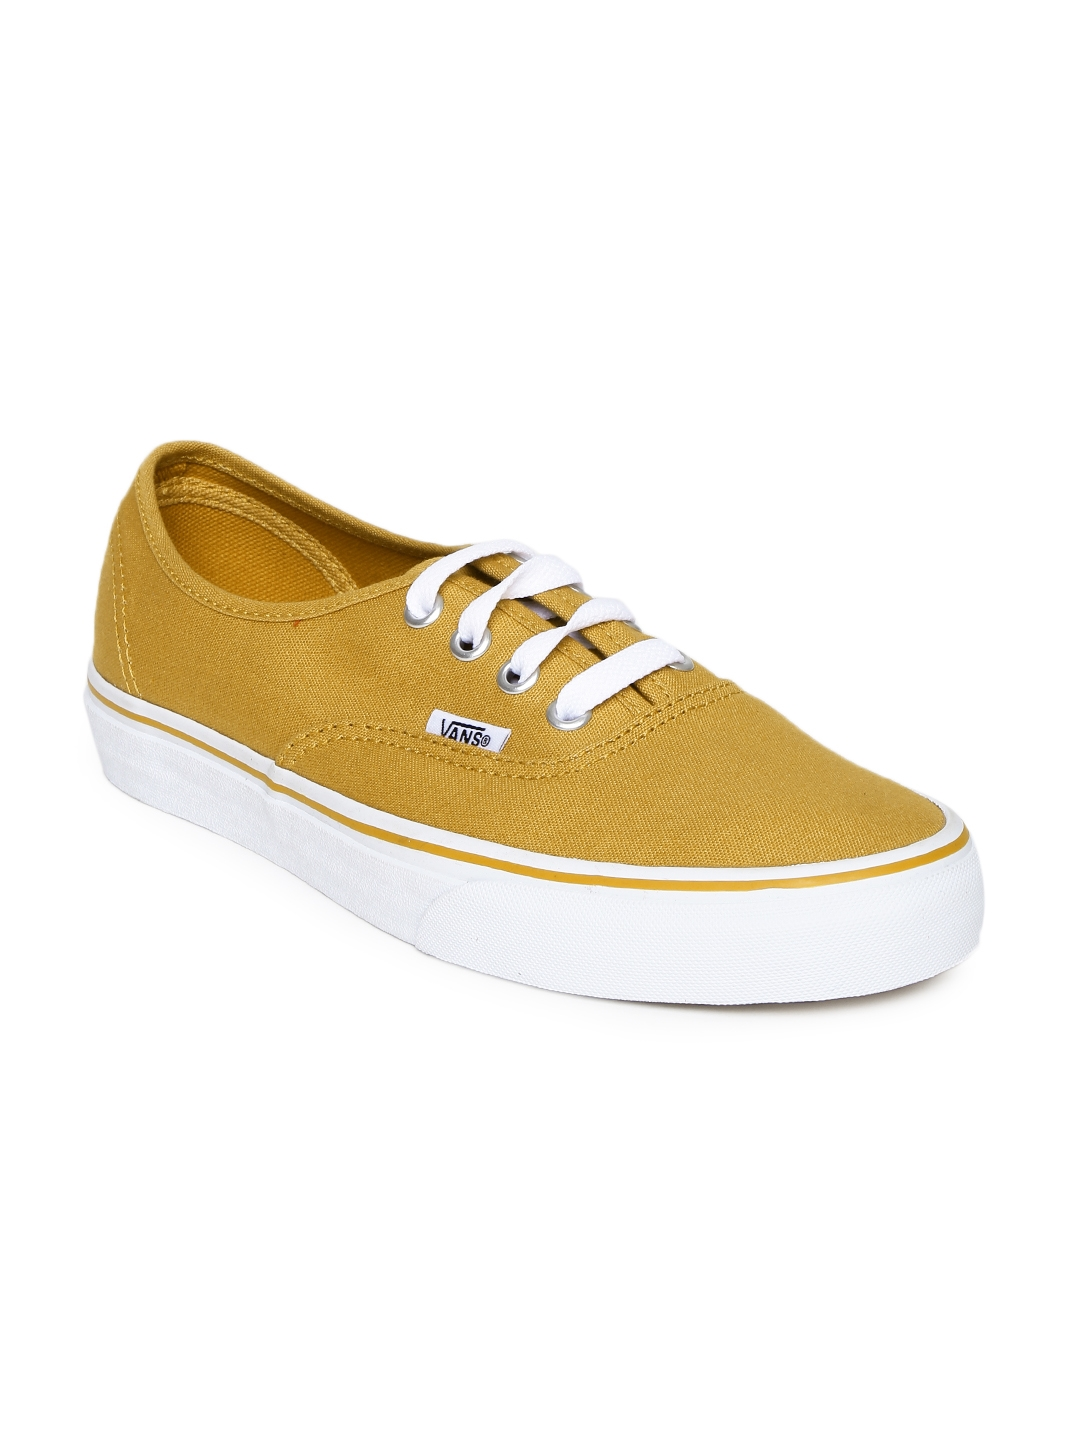 6ac0a80e325 Buy Vans Unisex Mustard Yellow Authentic Casual Shoes - Casual Shoes ...